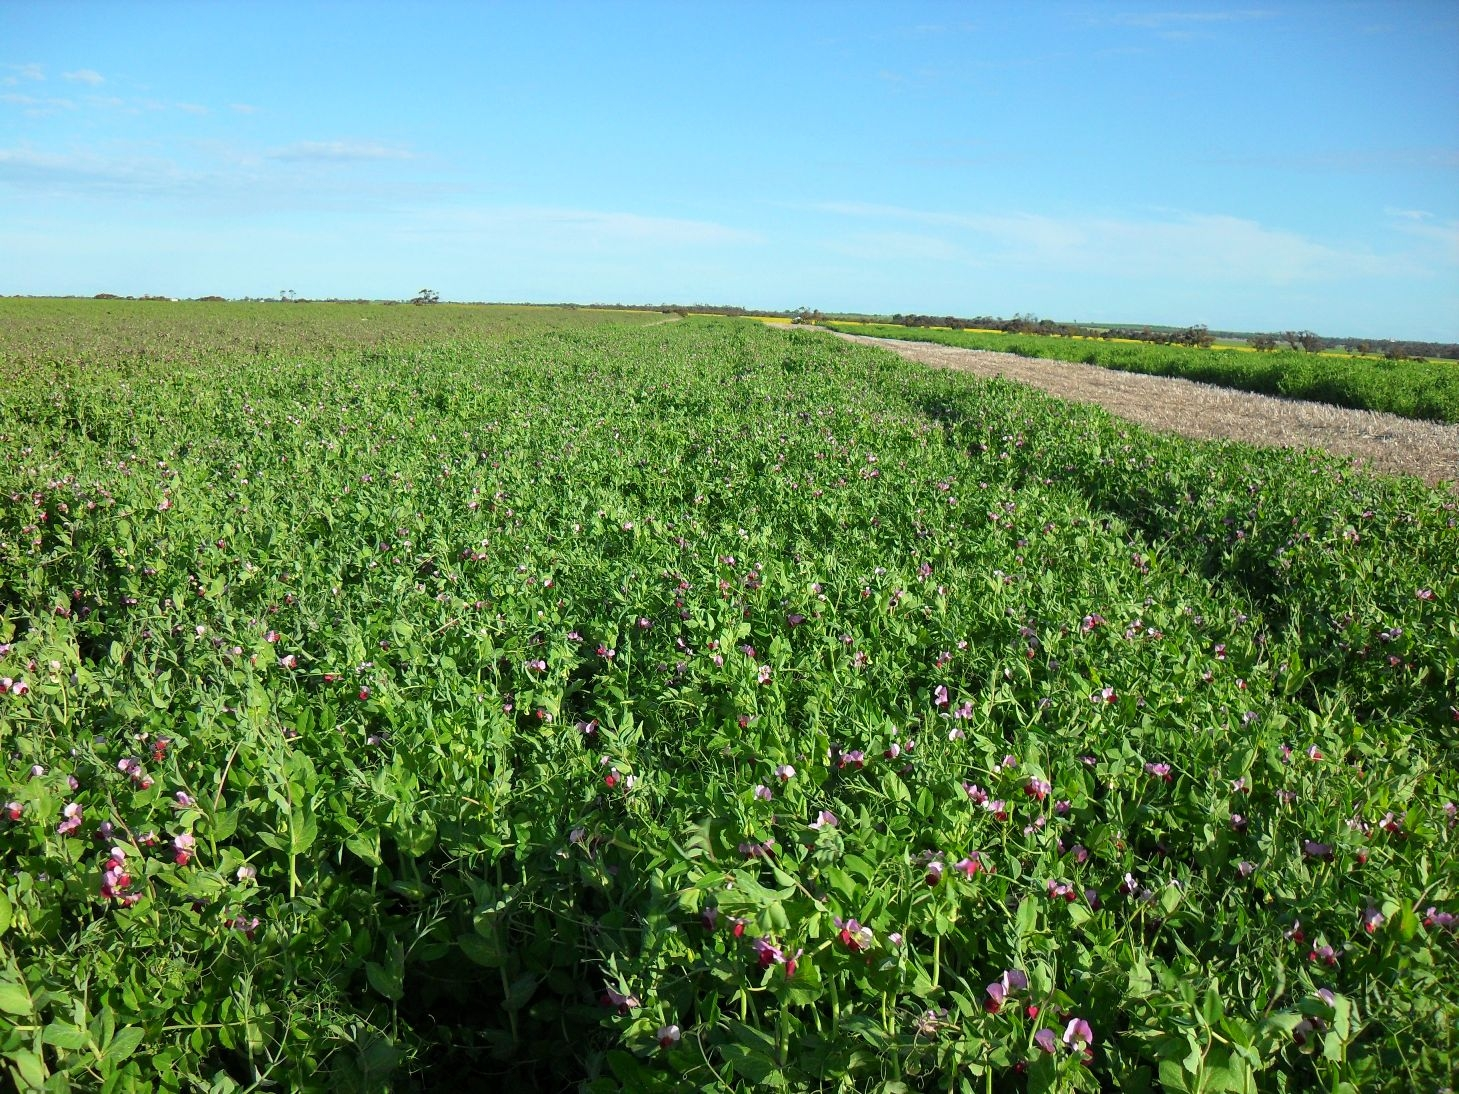 Dun field pea breeding program